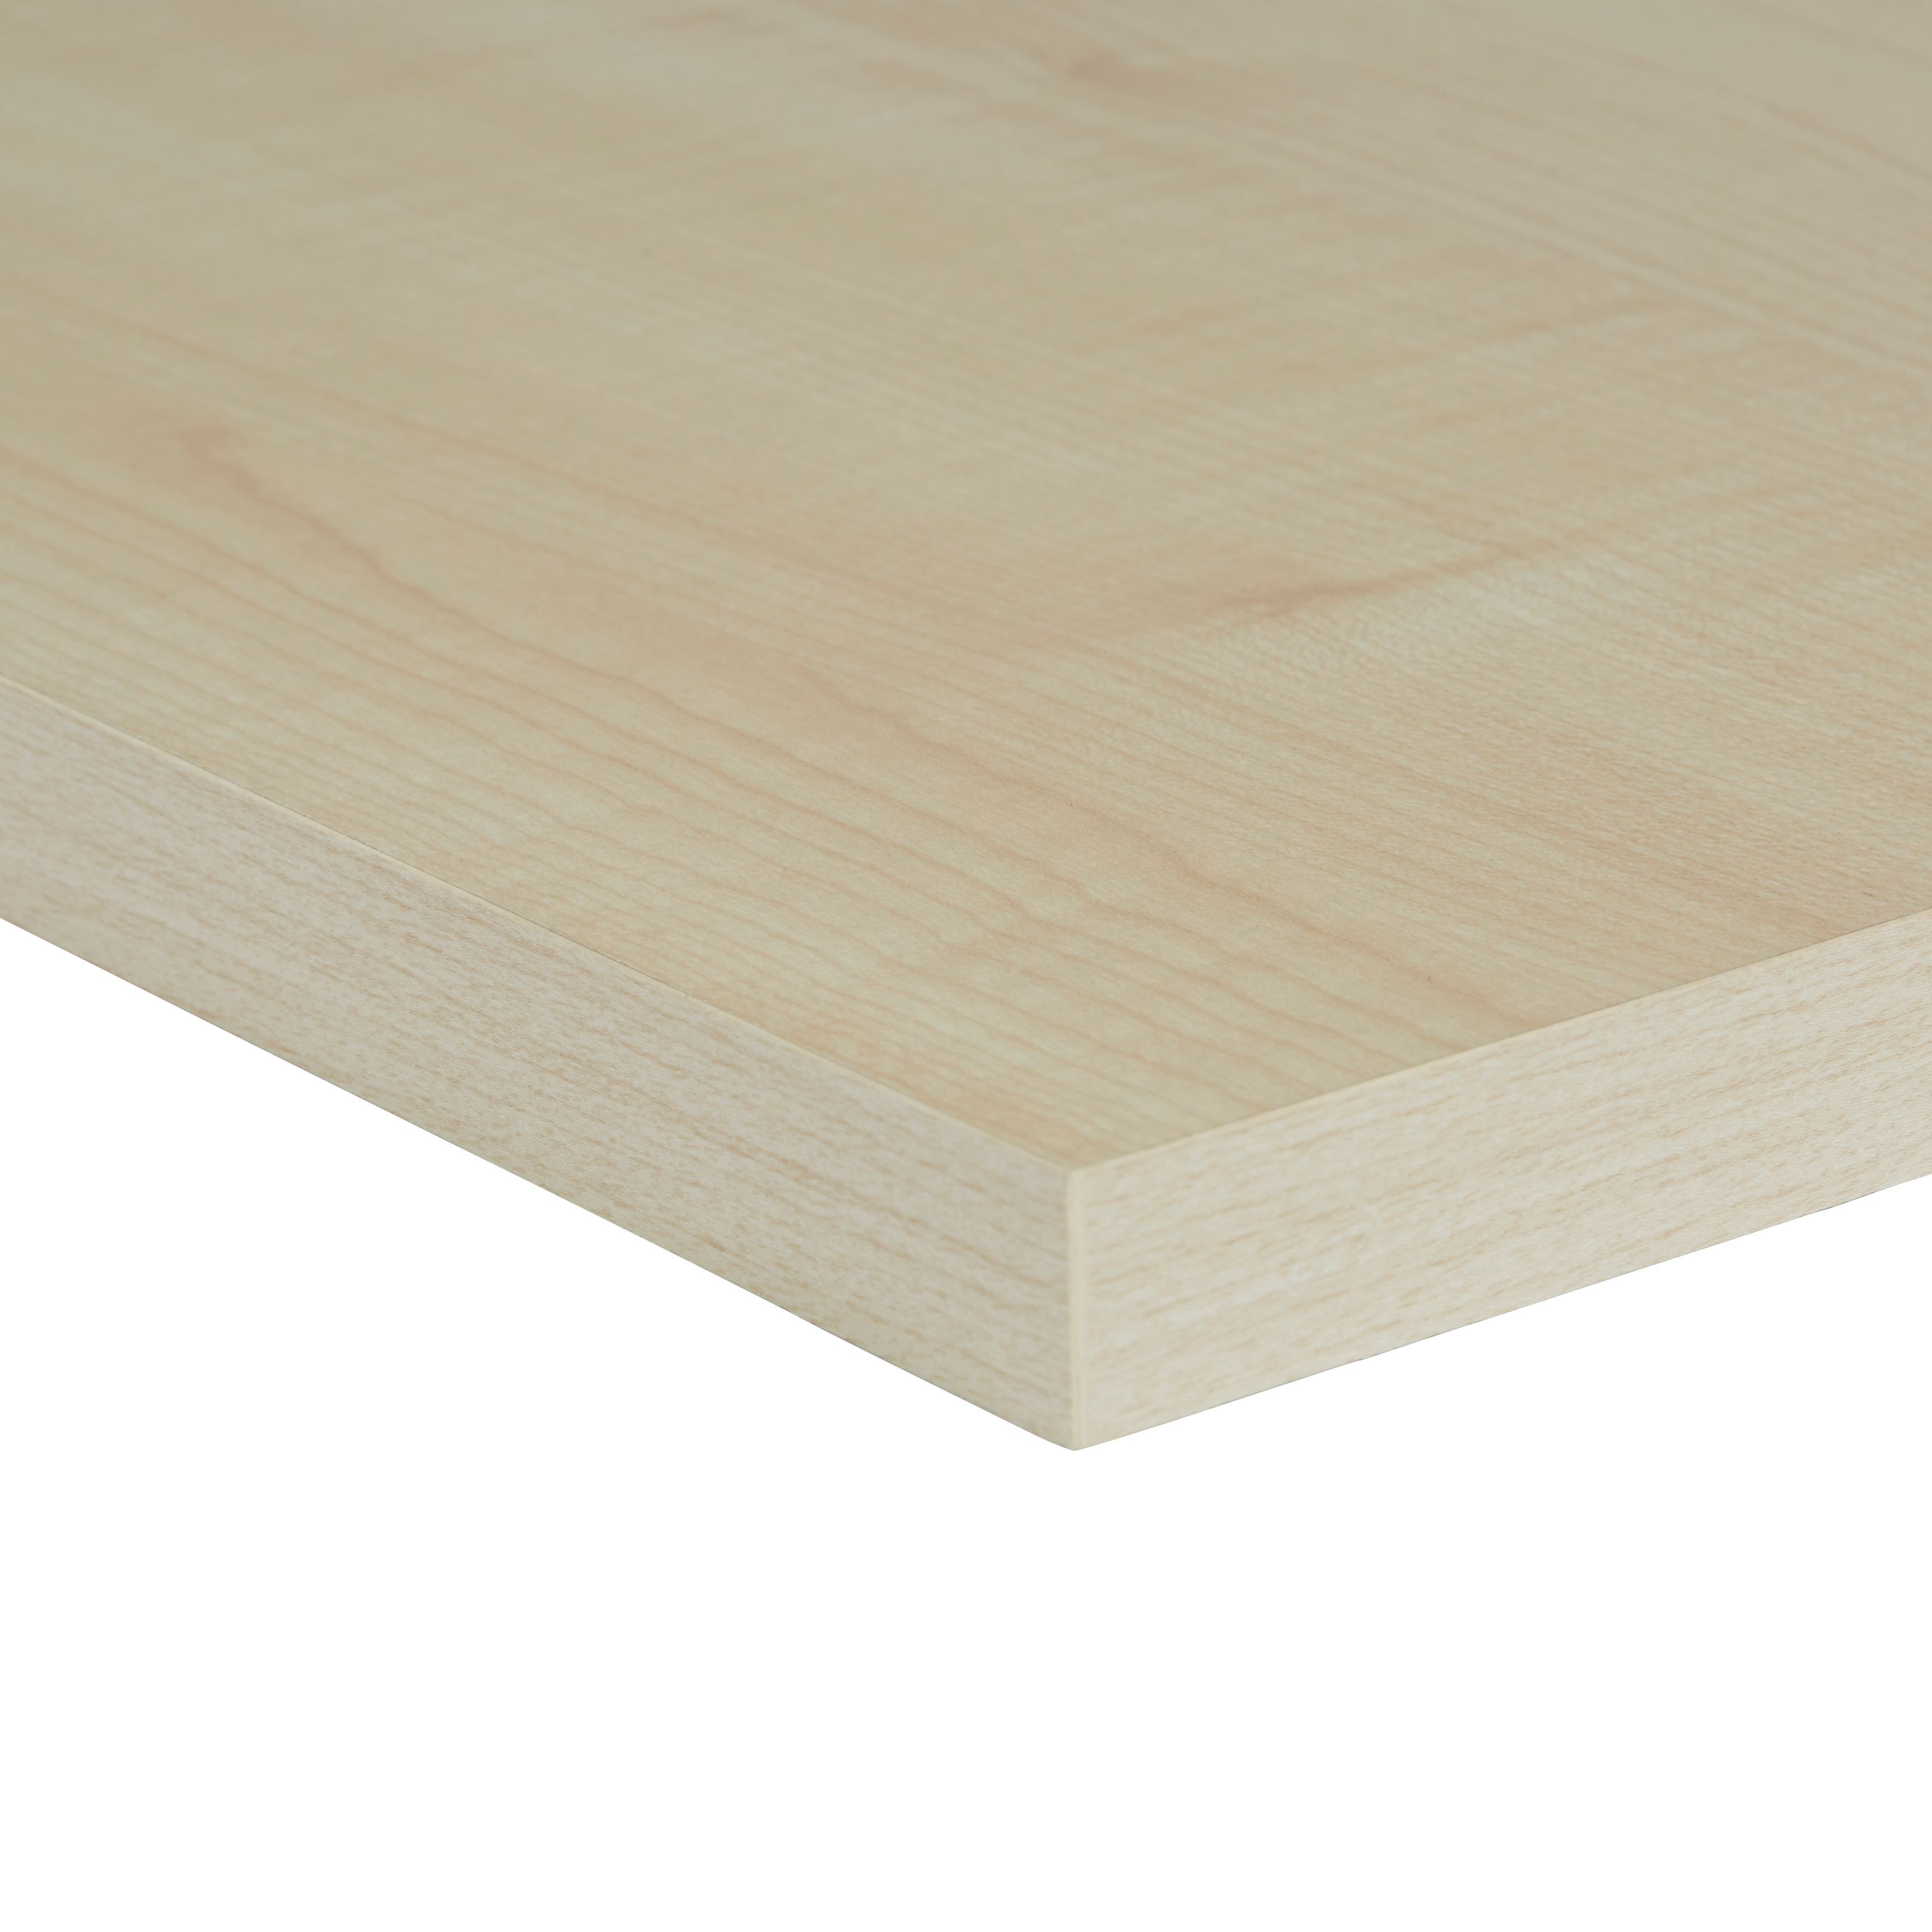 Chipboard Maple Furniture Board L 1200mm W 300mm T 18mm